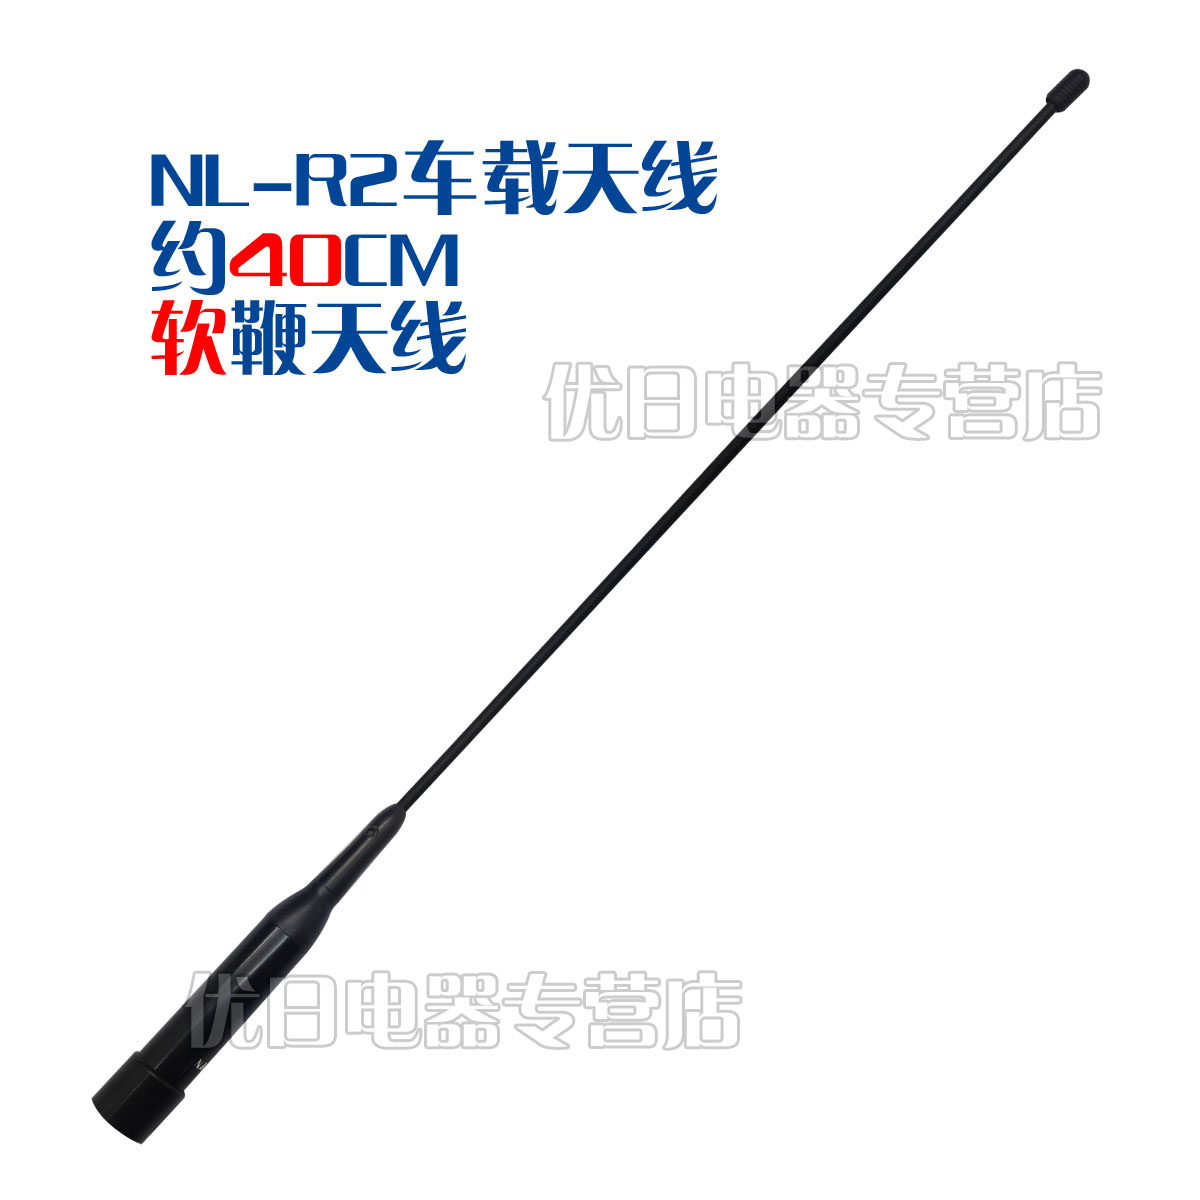 Excellent day â â car antenna nl-r2 car pole â NR-R2 â â â car seedling soft day line rubber Antenna